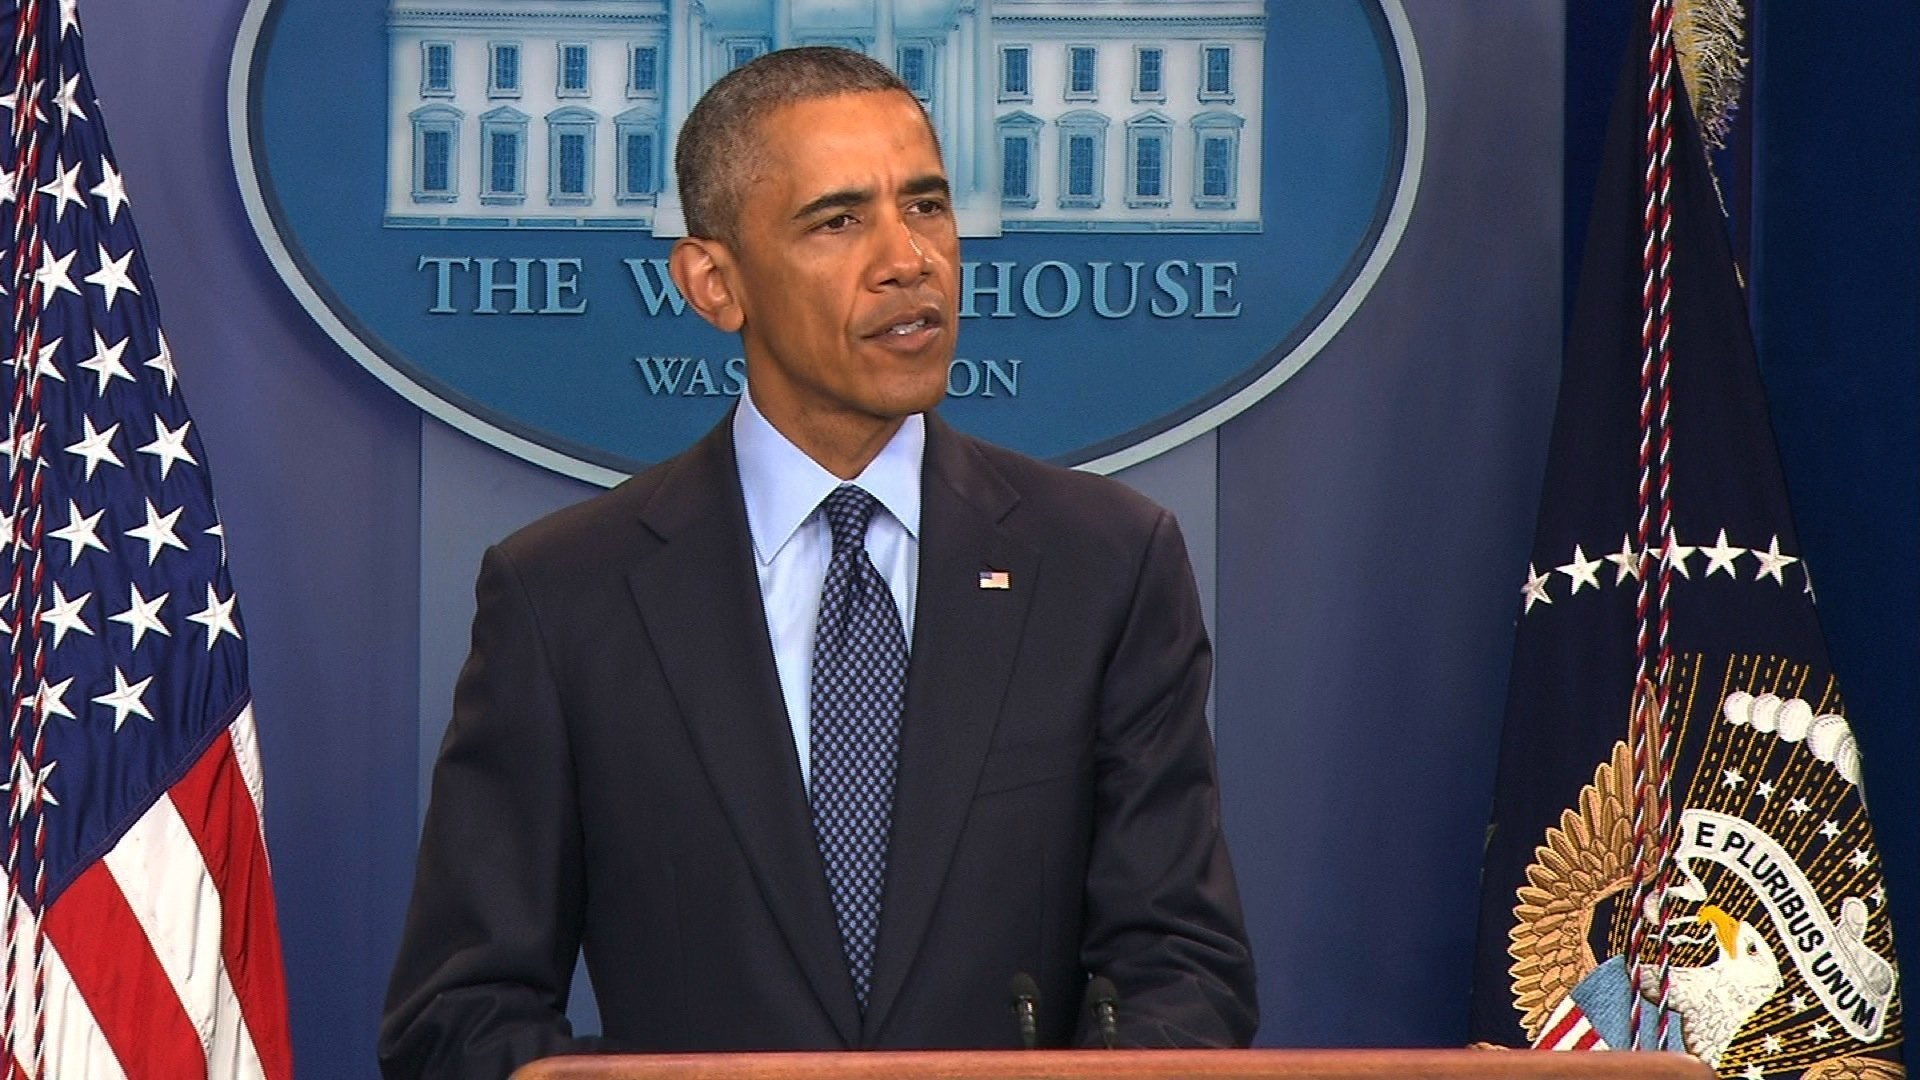 Caption: President Obama addressed the nation on Sunday, June 12, 2016 about the worst terror attack in U.S. history since 9/11. 50 people were killed inside the Pulse club in Orlando, Florida and at least 53 people were injured, police say.